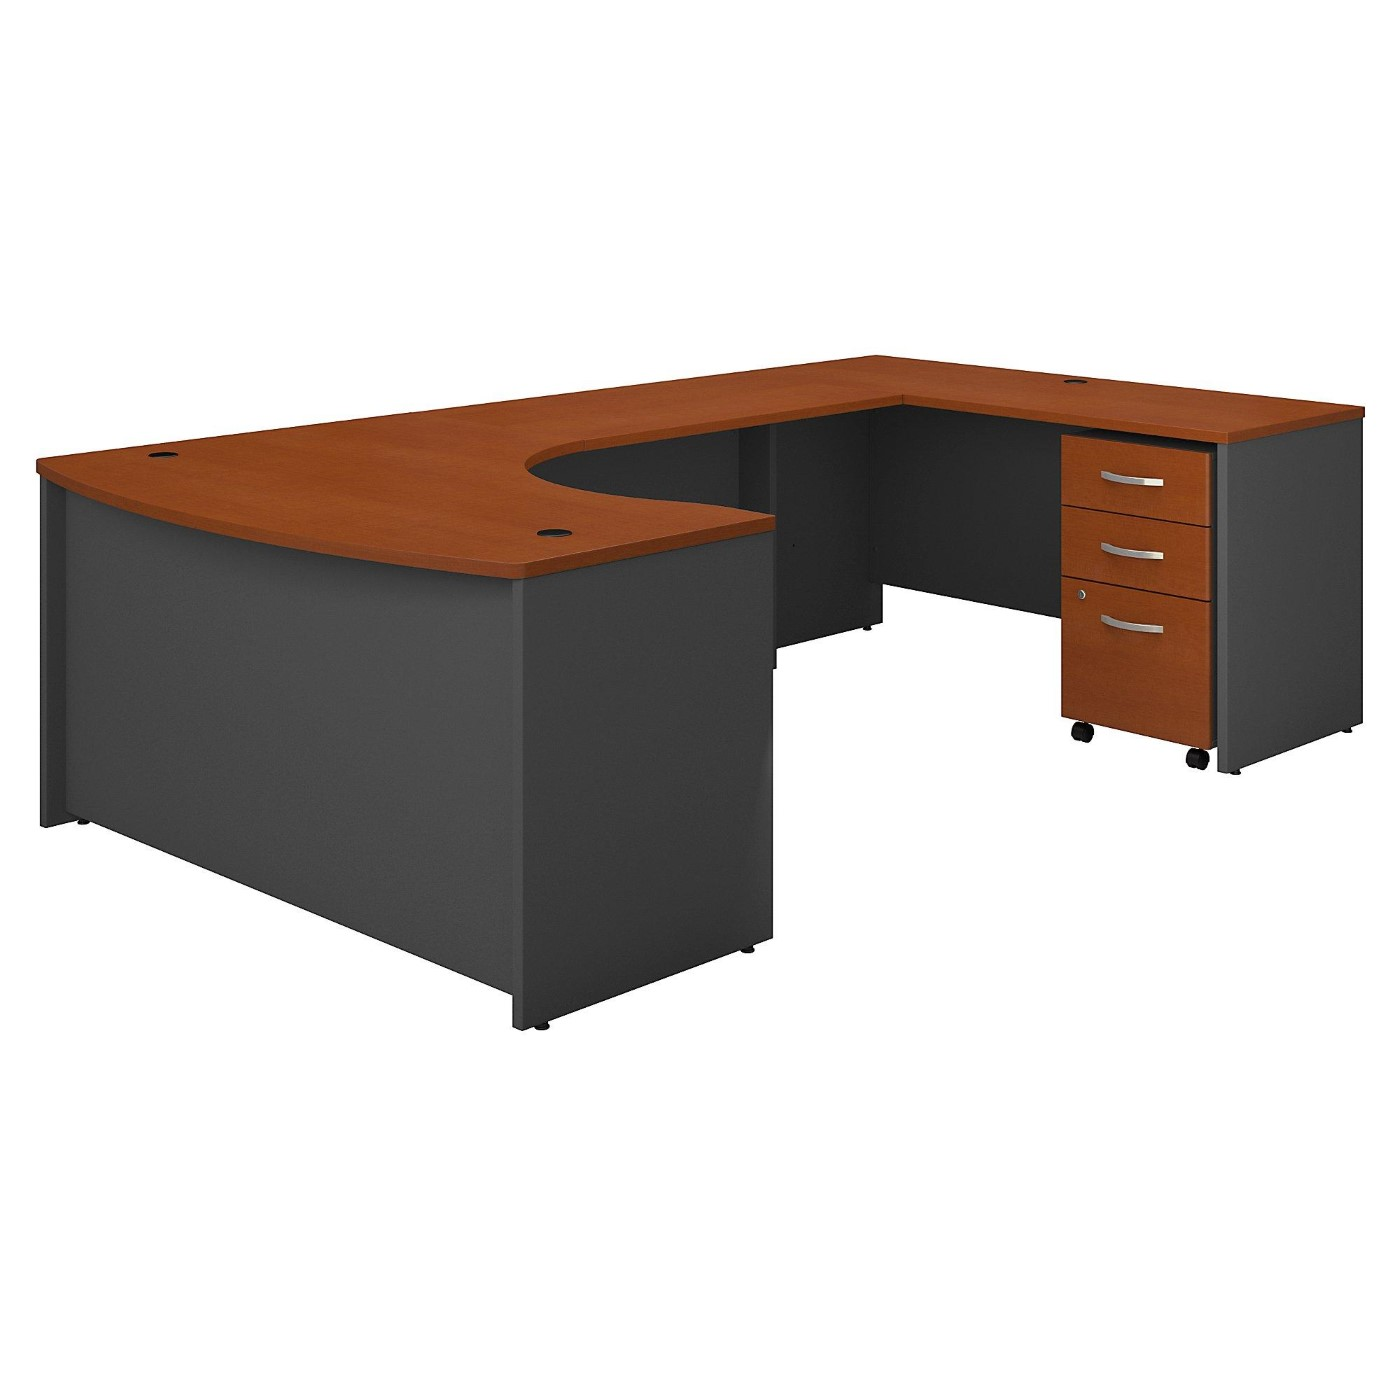 <font color=#c60><b>BUSH BUSINESS FURNITURE SERIES C 60W LEFT HANDED BOW FRONT U SHAPED DESK WITH MOBILE FILE CABINET. FREE SHIPPING</font></b></font>